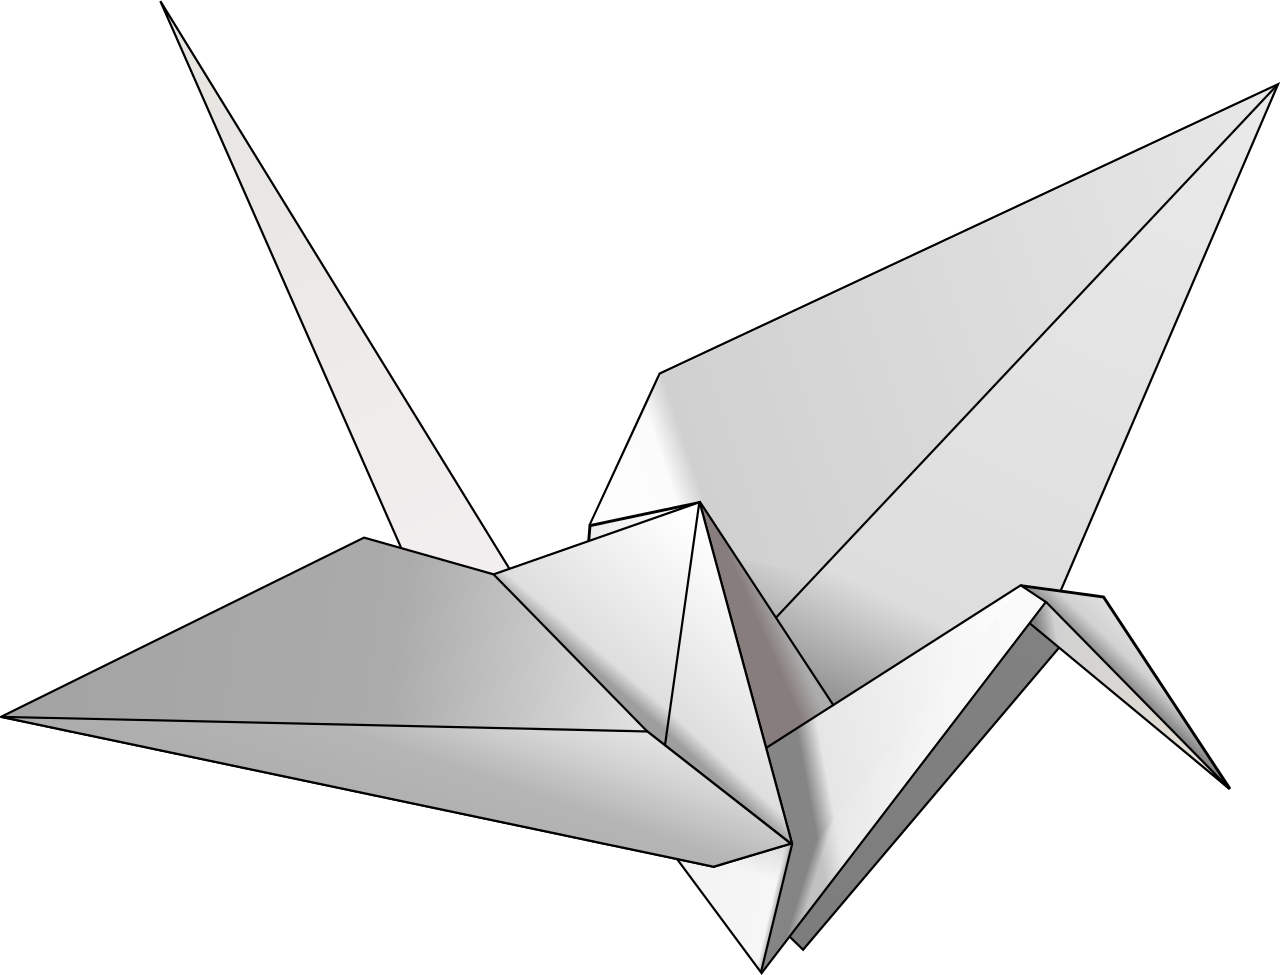 Crane svg #14, Download drawings